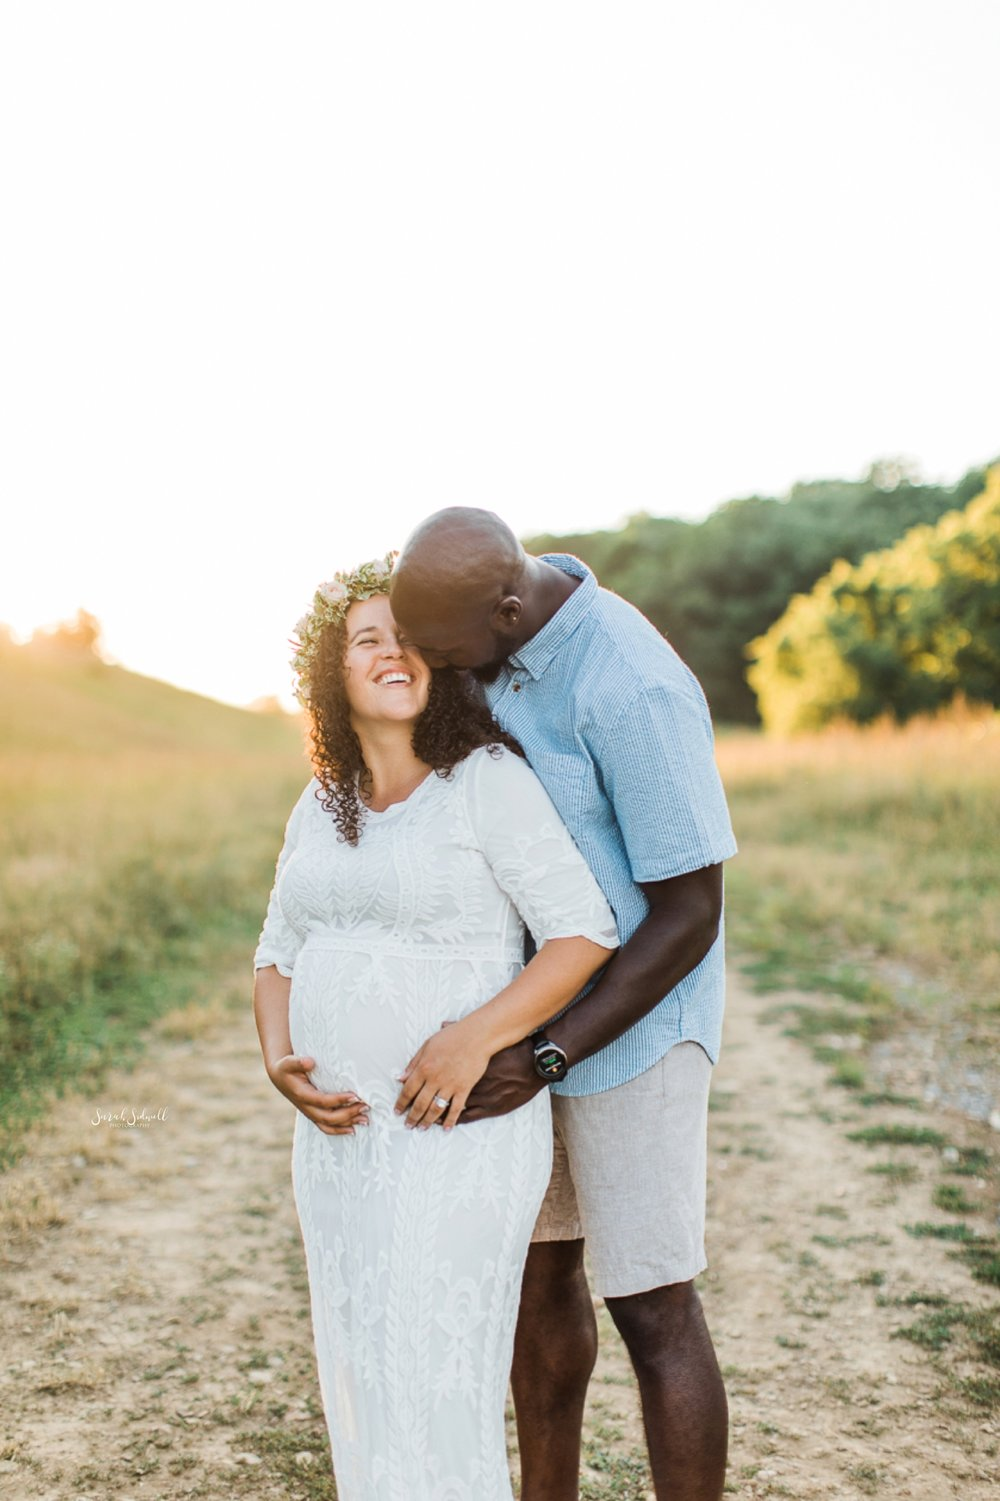 A man hugs his pregnant wife during a family maternity session.